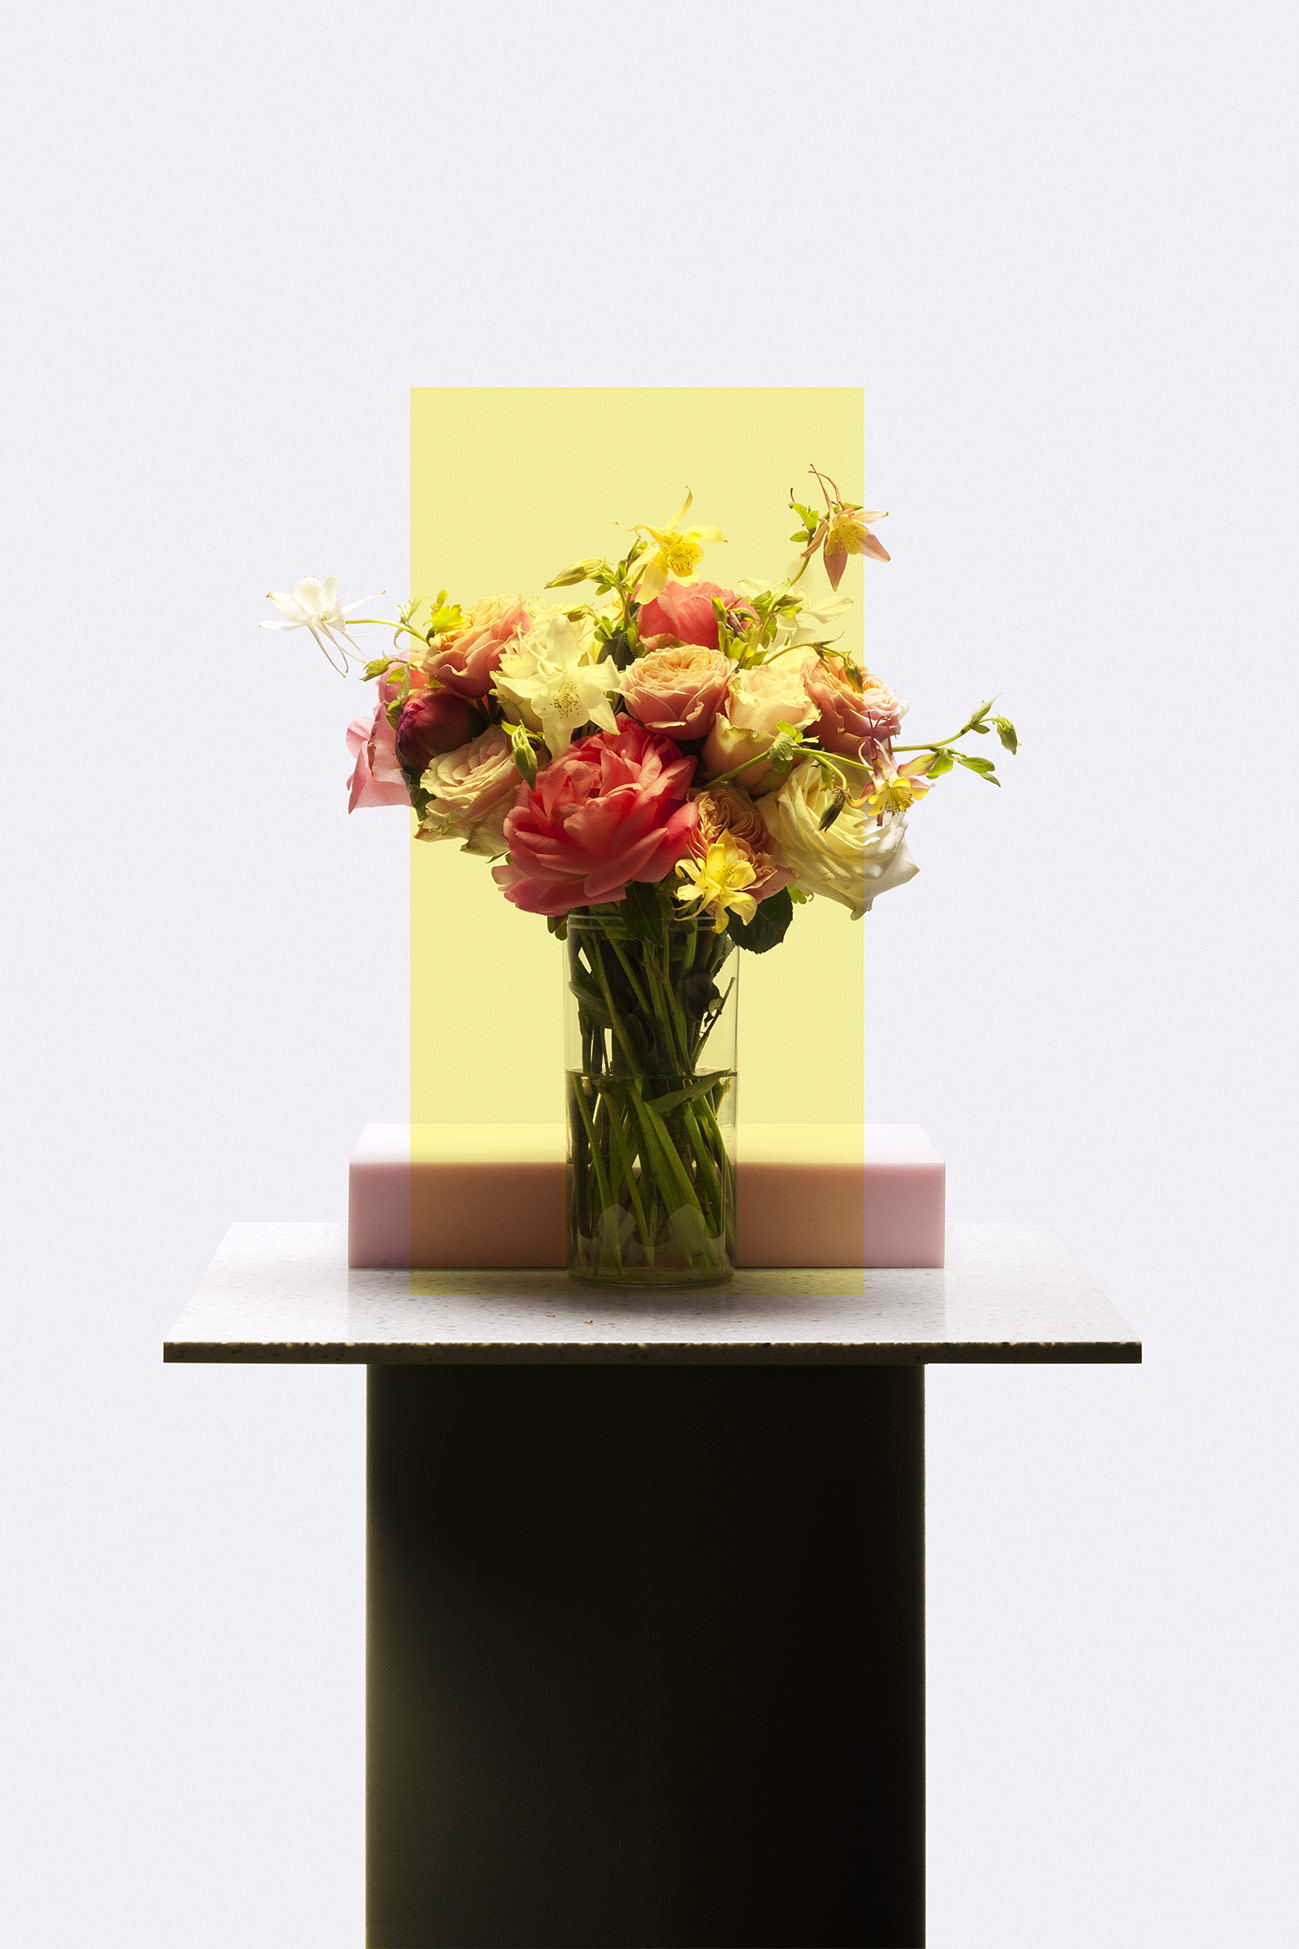 Greeting cards for  Bozarth Fornell Architects in collaboration with  Daniel Carlsten